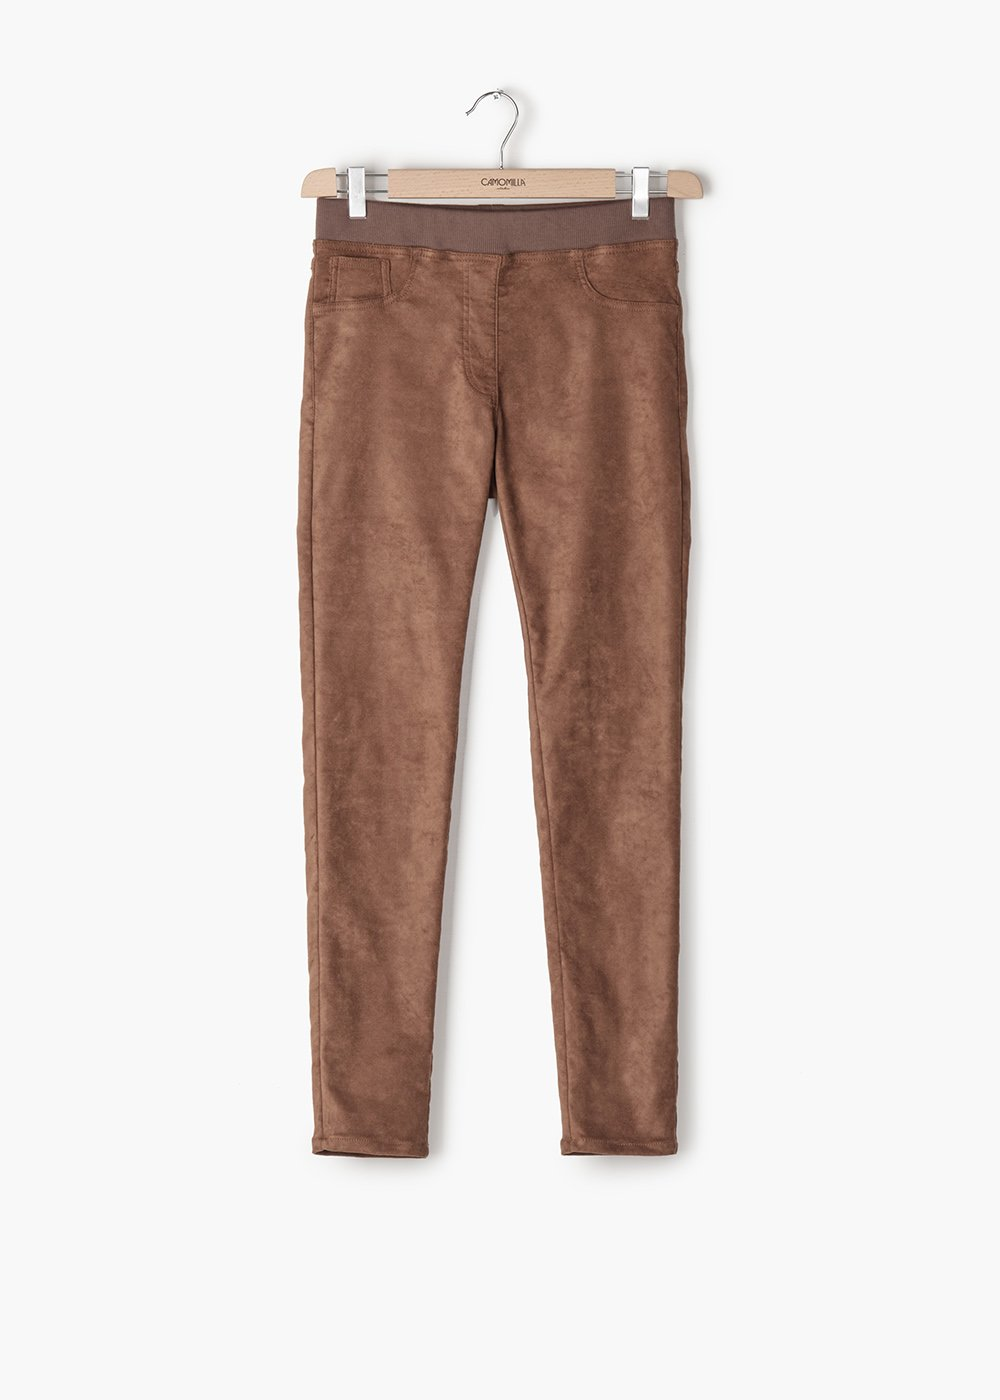 Pantaloni Kelly in eco daino con elastico in tono